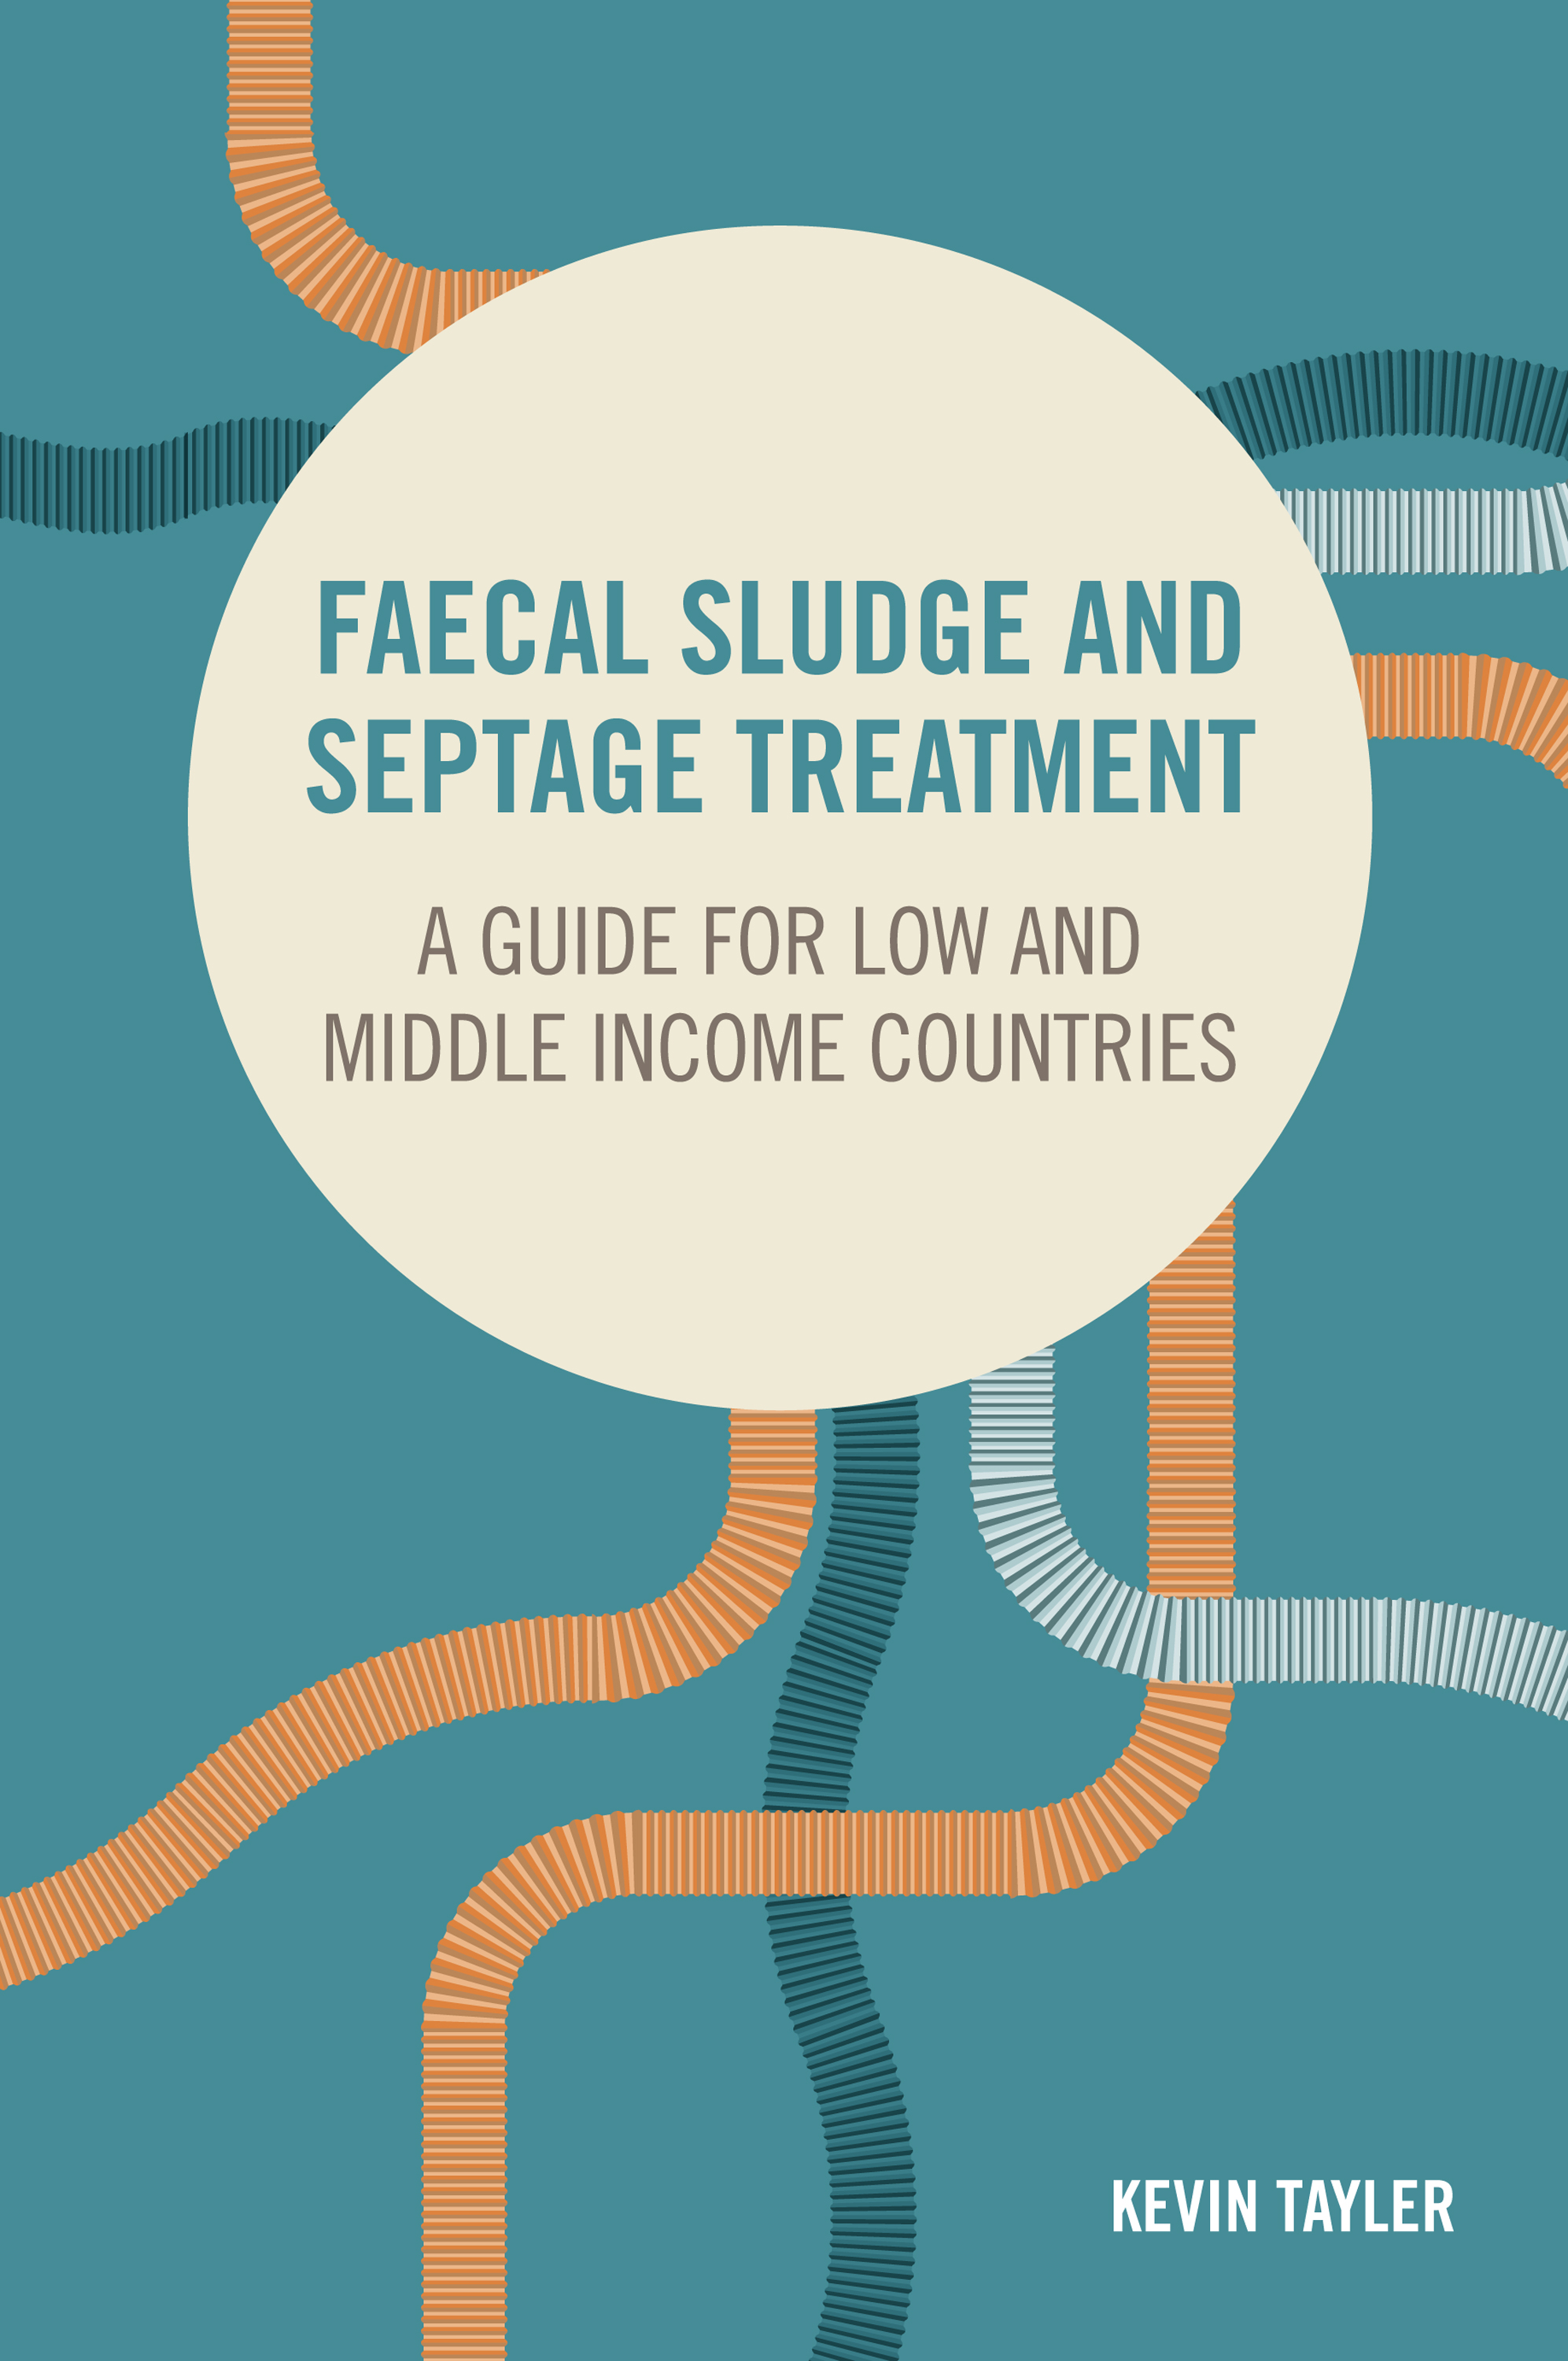 Faecal Sludge and Septage Treatment